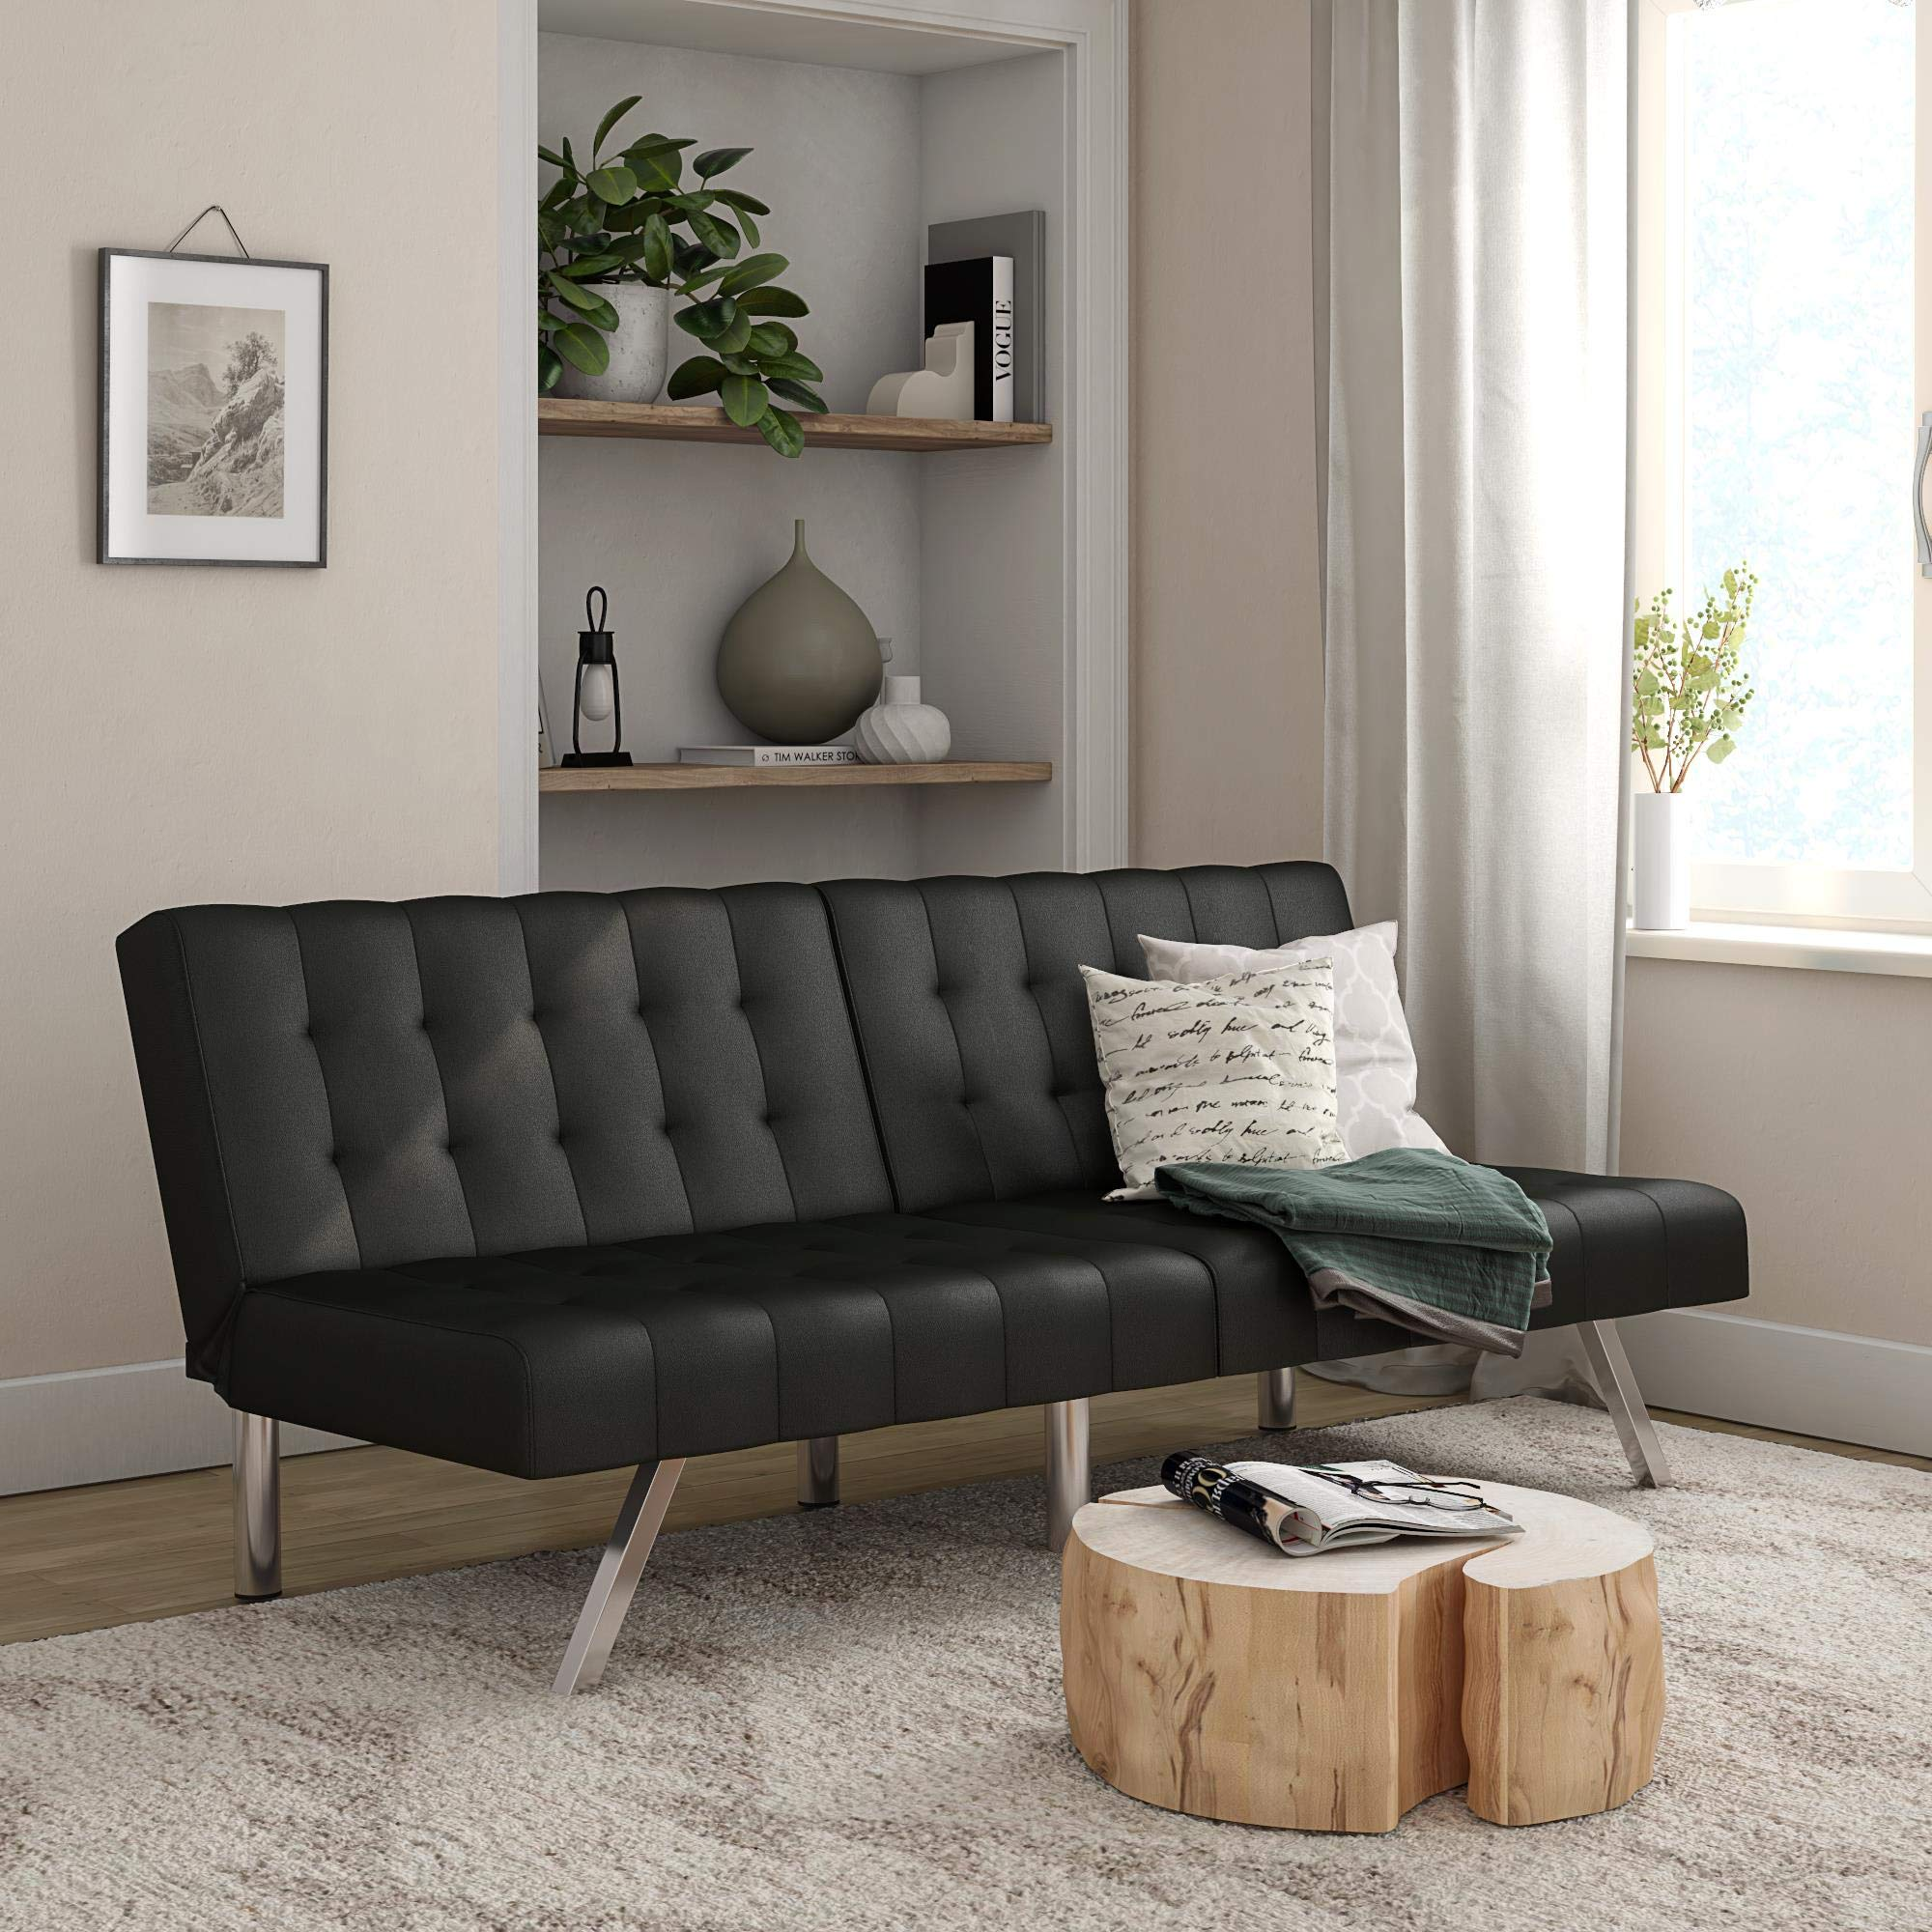 Mainstays Morgan Convertible Tufted Futon, Black Faux Leather by Mainstay